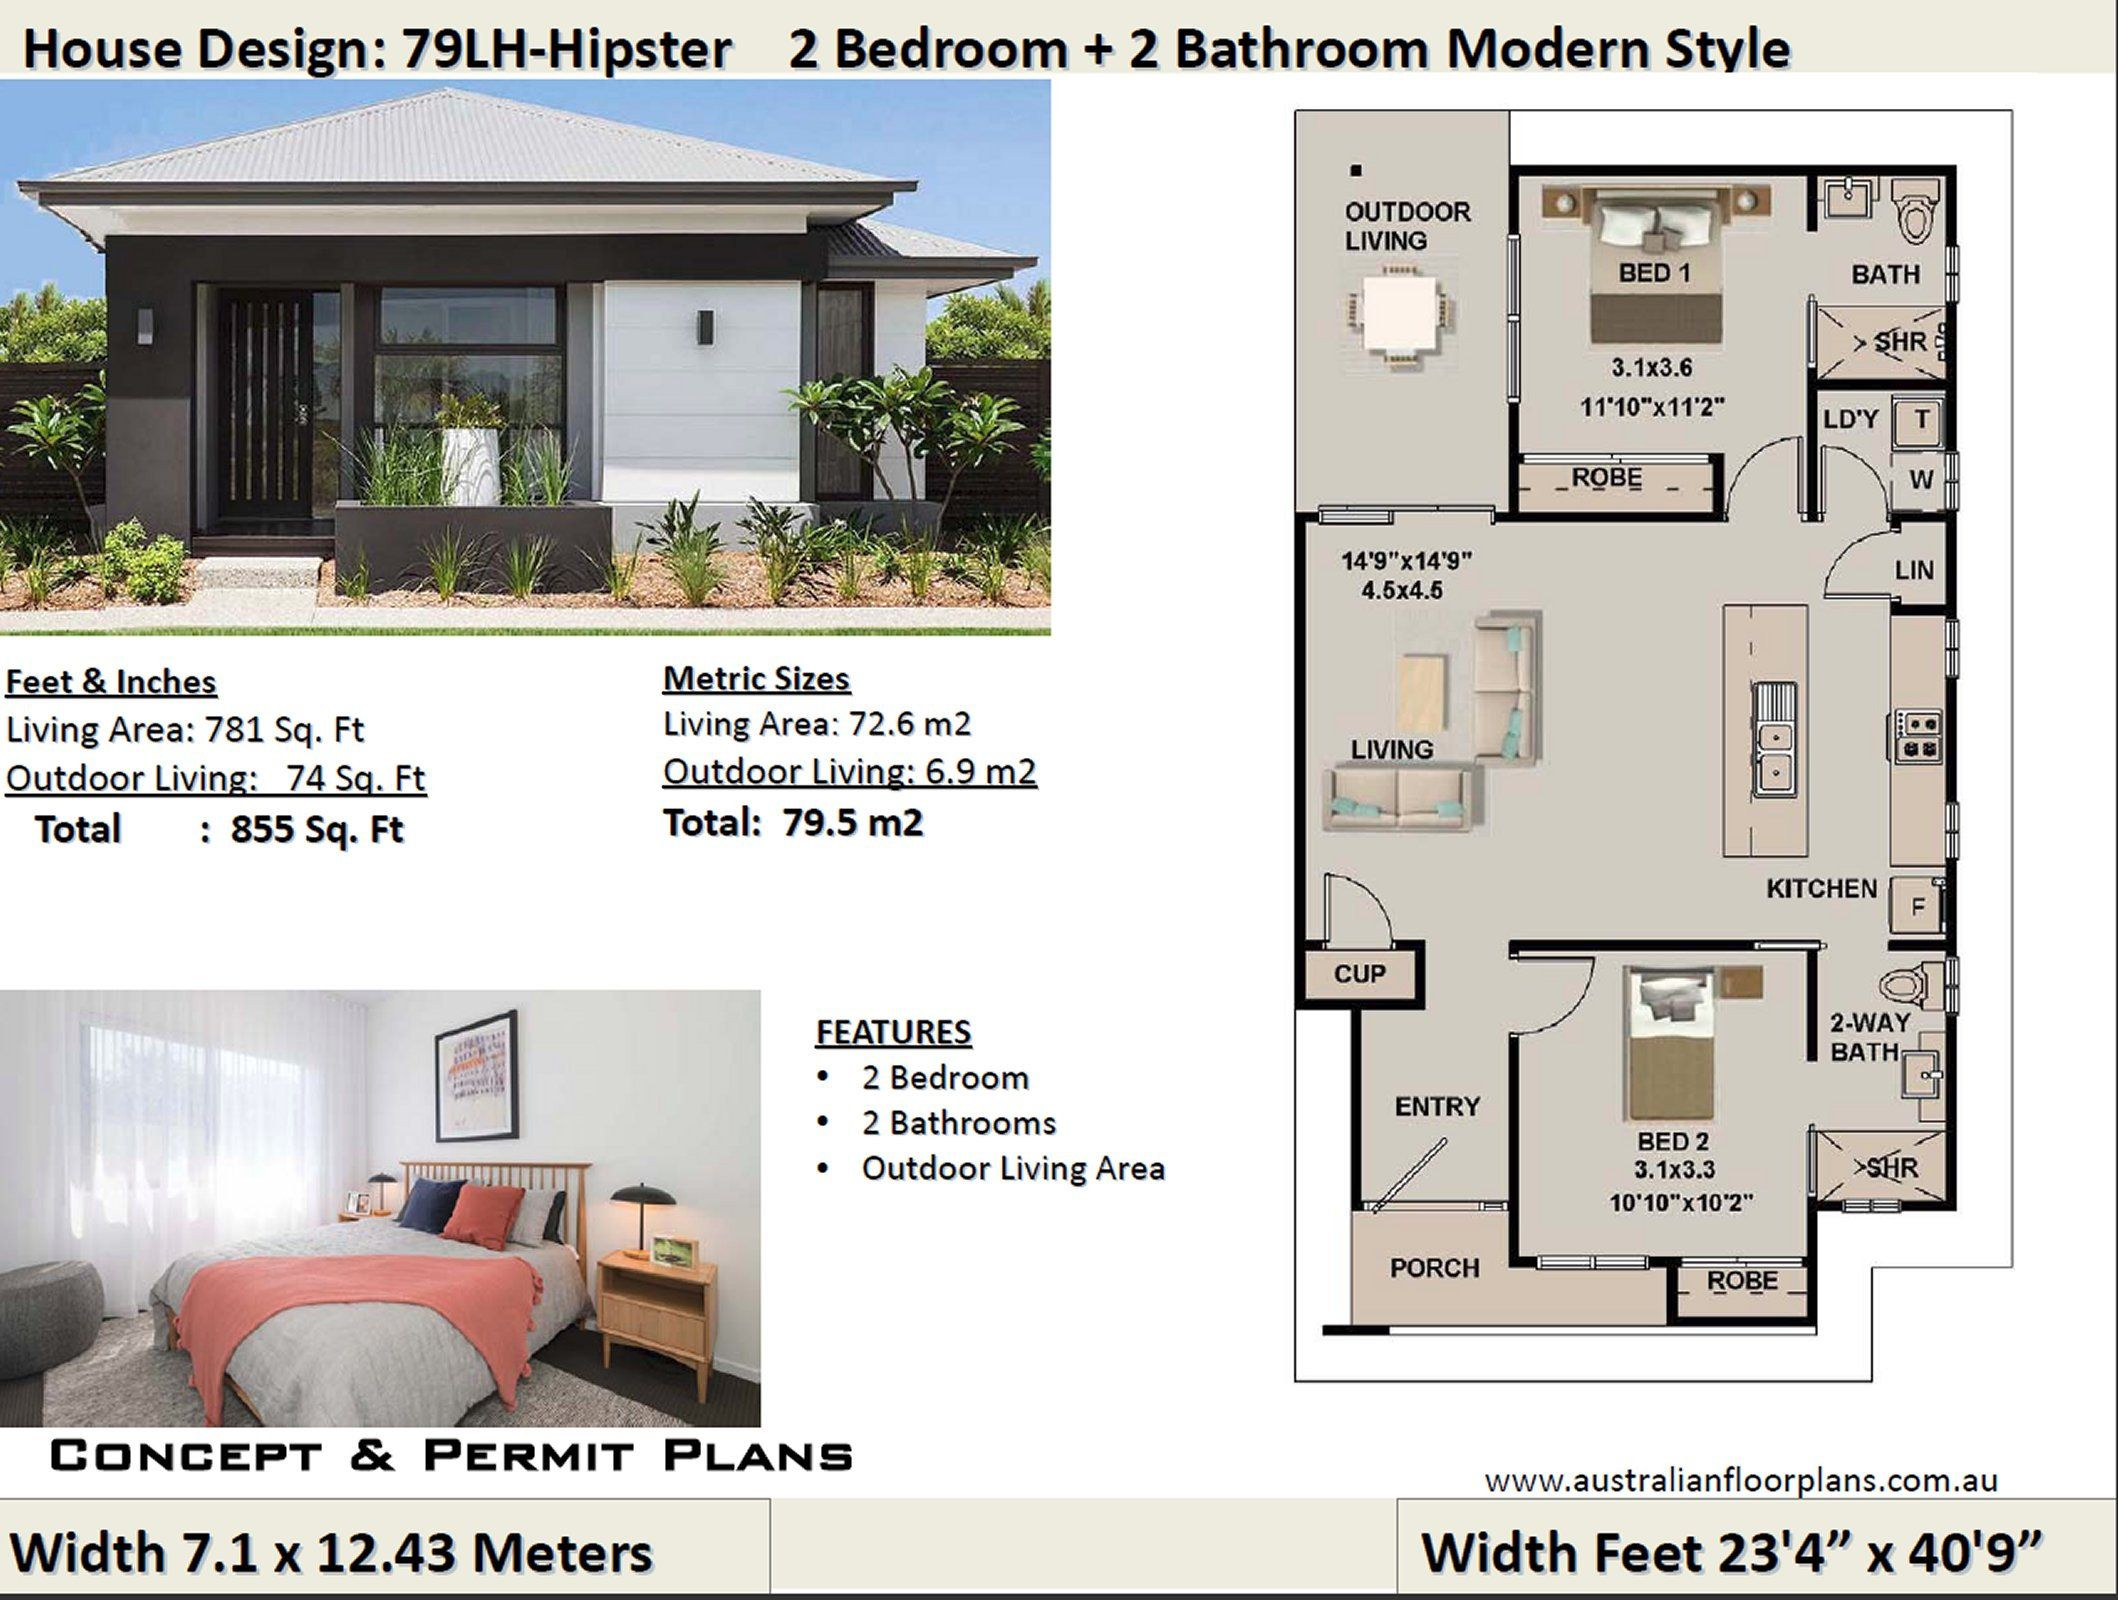 2 Bedroom House Plan No 79 Hipster Living Area 79 5 M2 Etsy House Plans For Sale Small House Design Tiny House Plans